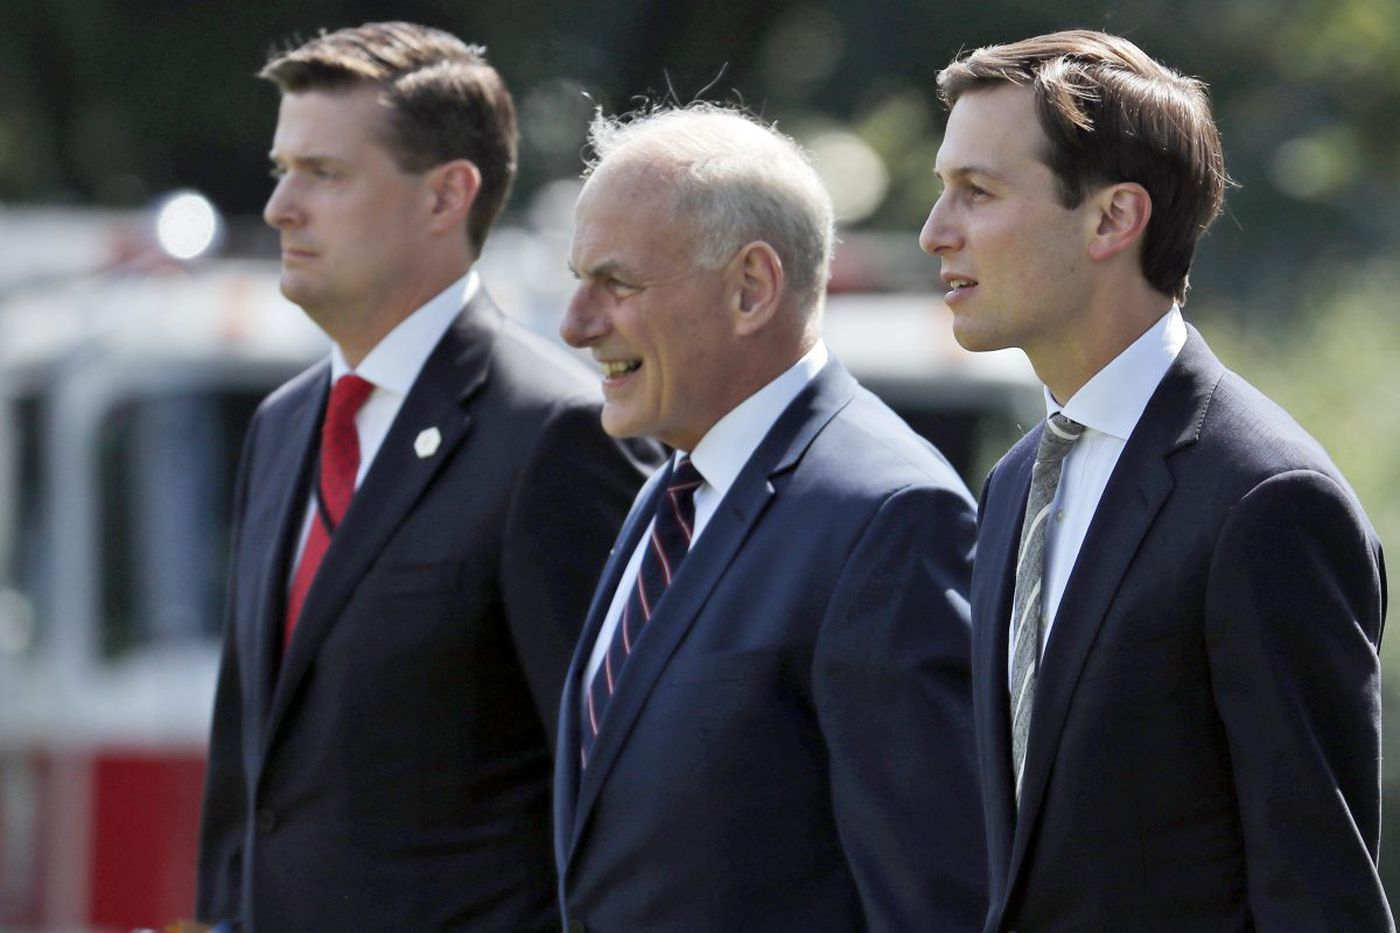 #TimesUp for John Kelly, and for toxic masculinity in Trump's White House | Will Bunch